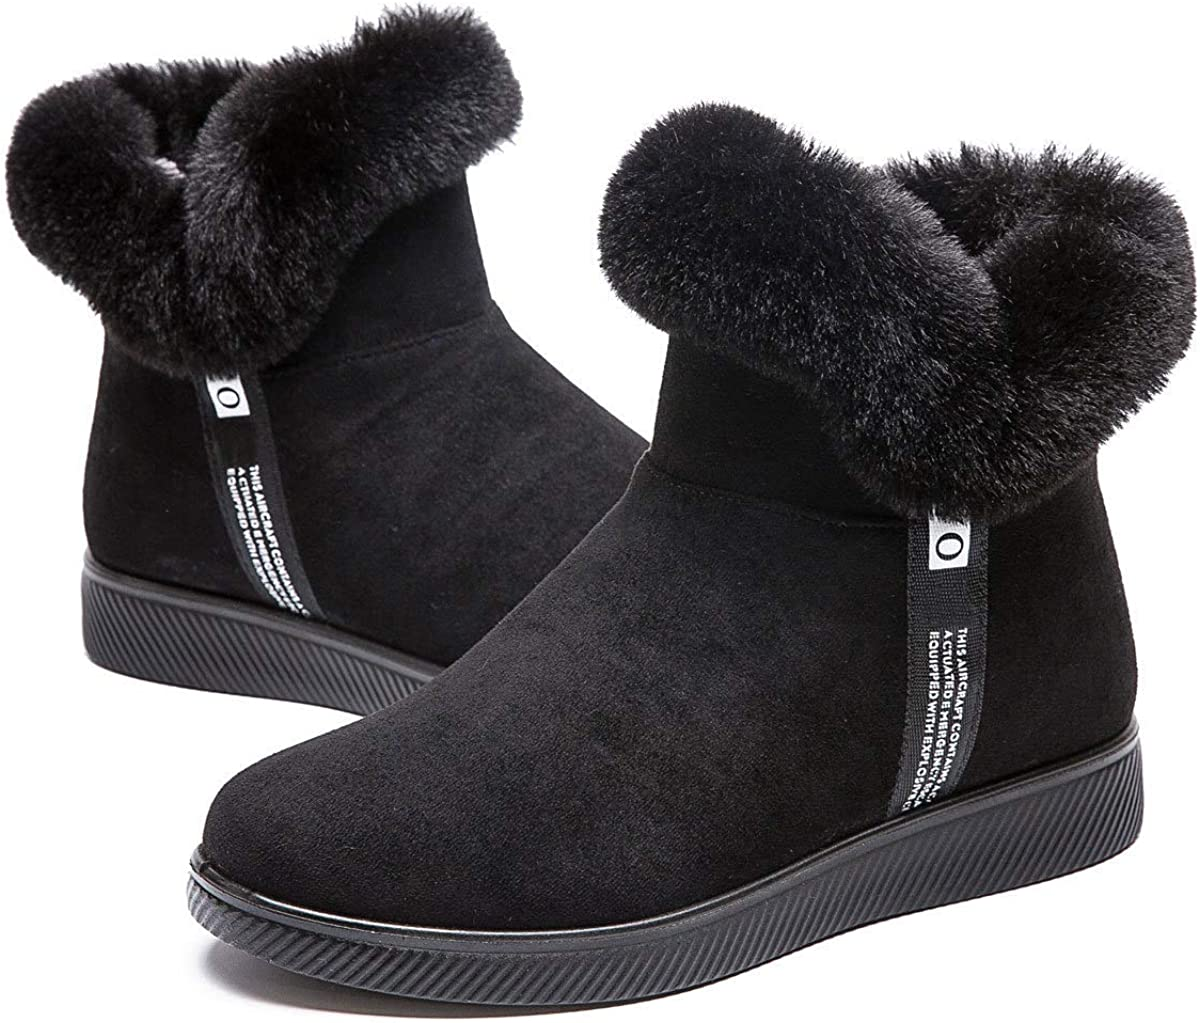 Orangetime Cozy Fur Lined Price reduction Snow Boots Max 44% OFF Warm Ant Winter Women Shoes